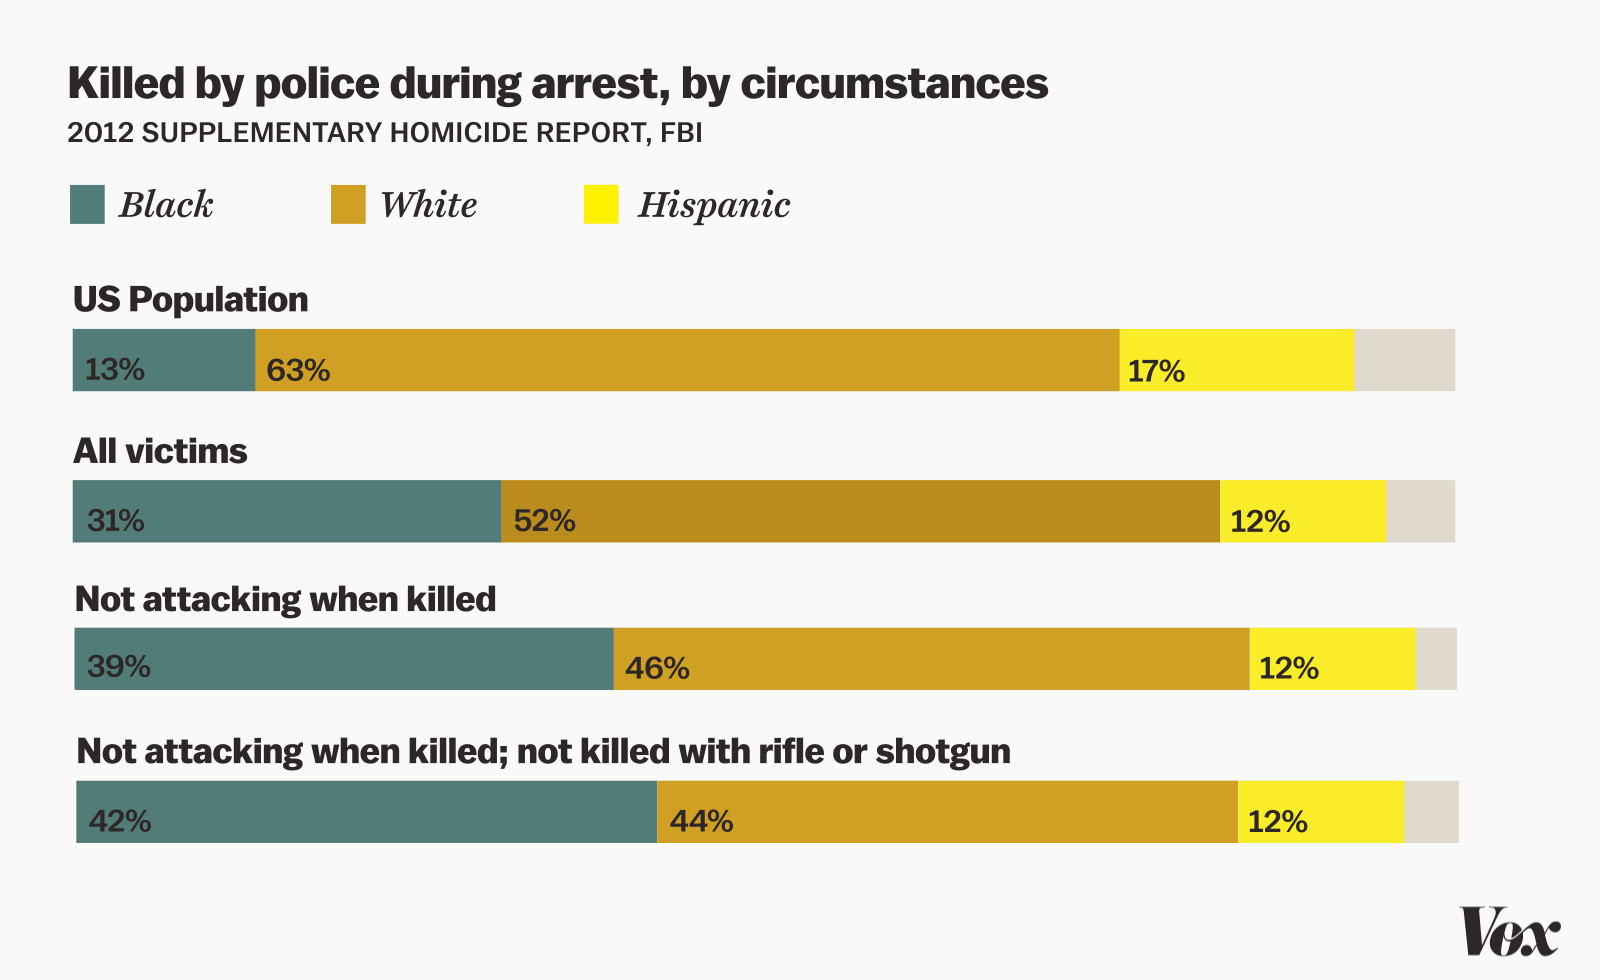 Police shooting by race, by Joe Posner/Vox